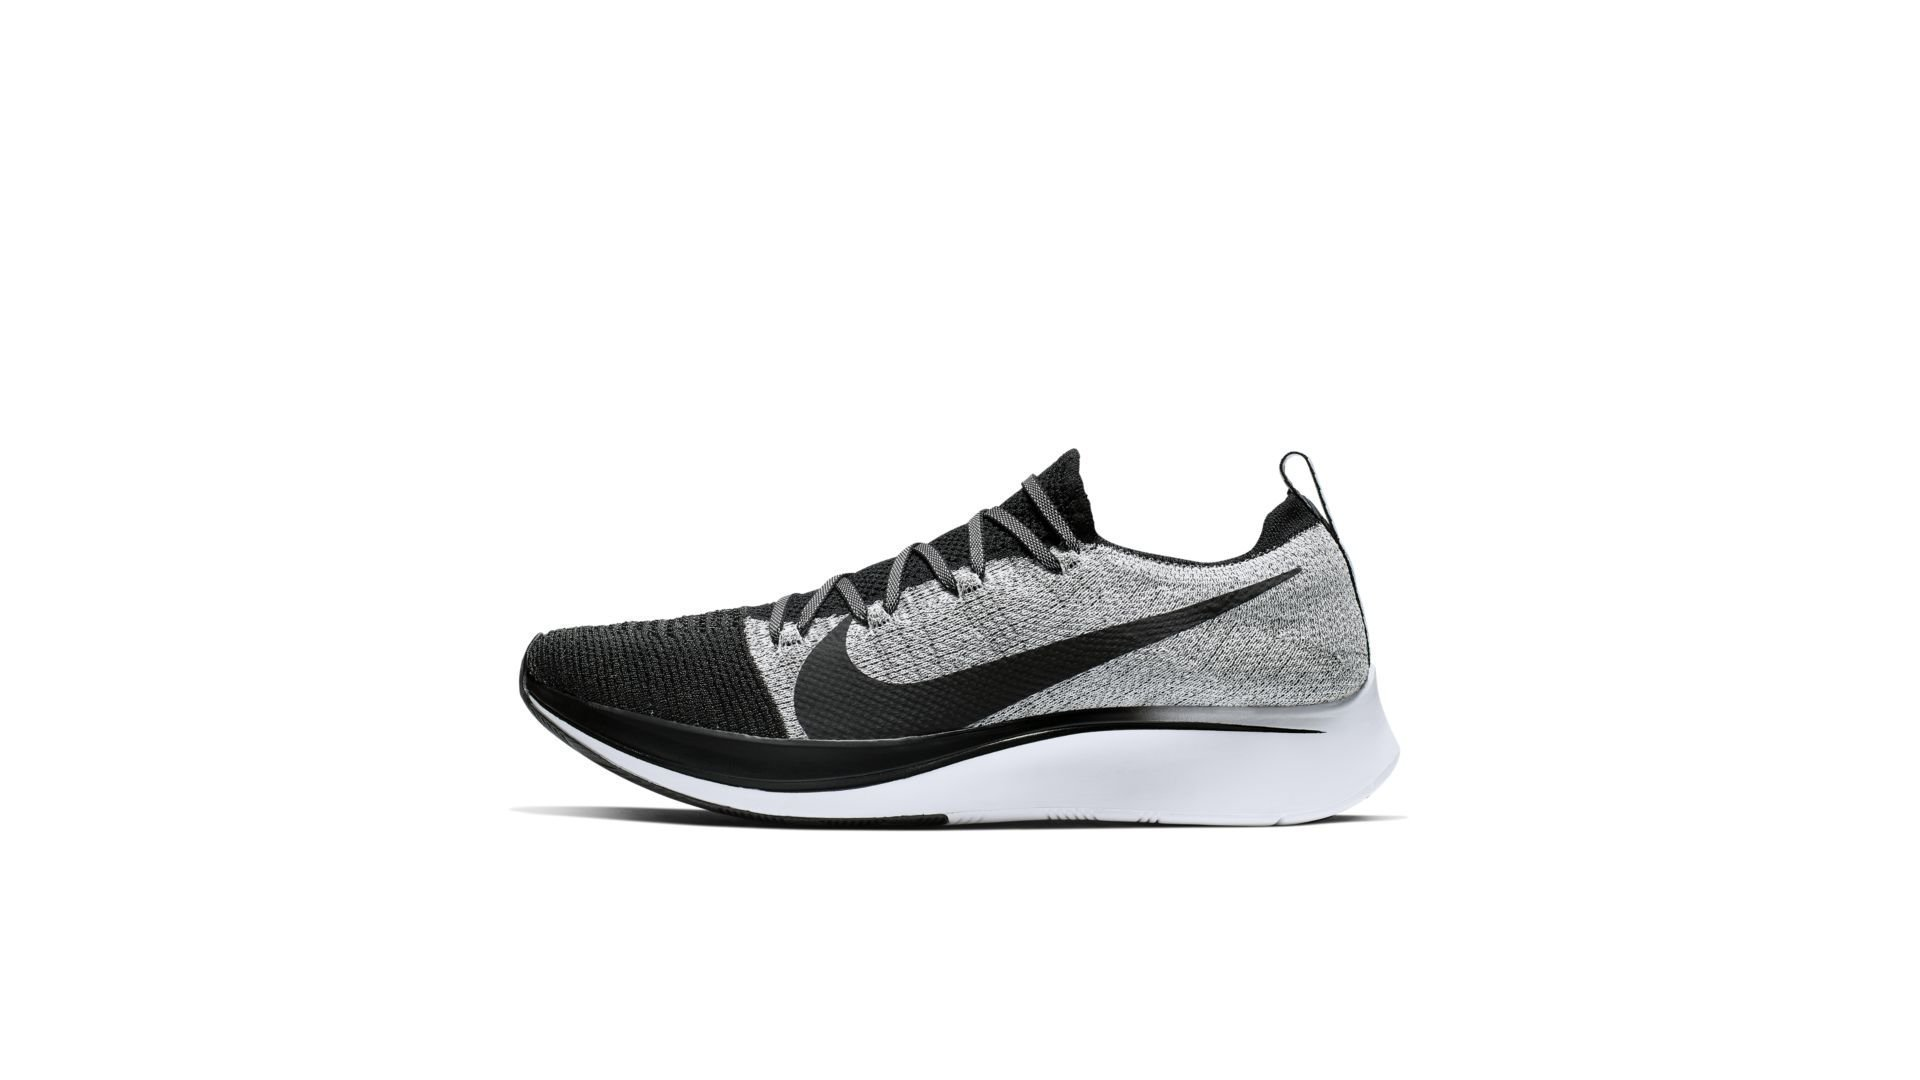 Nike Zoom Fly Flyknit Black White (BV6103-001)